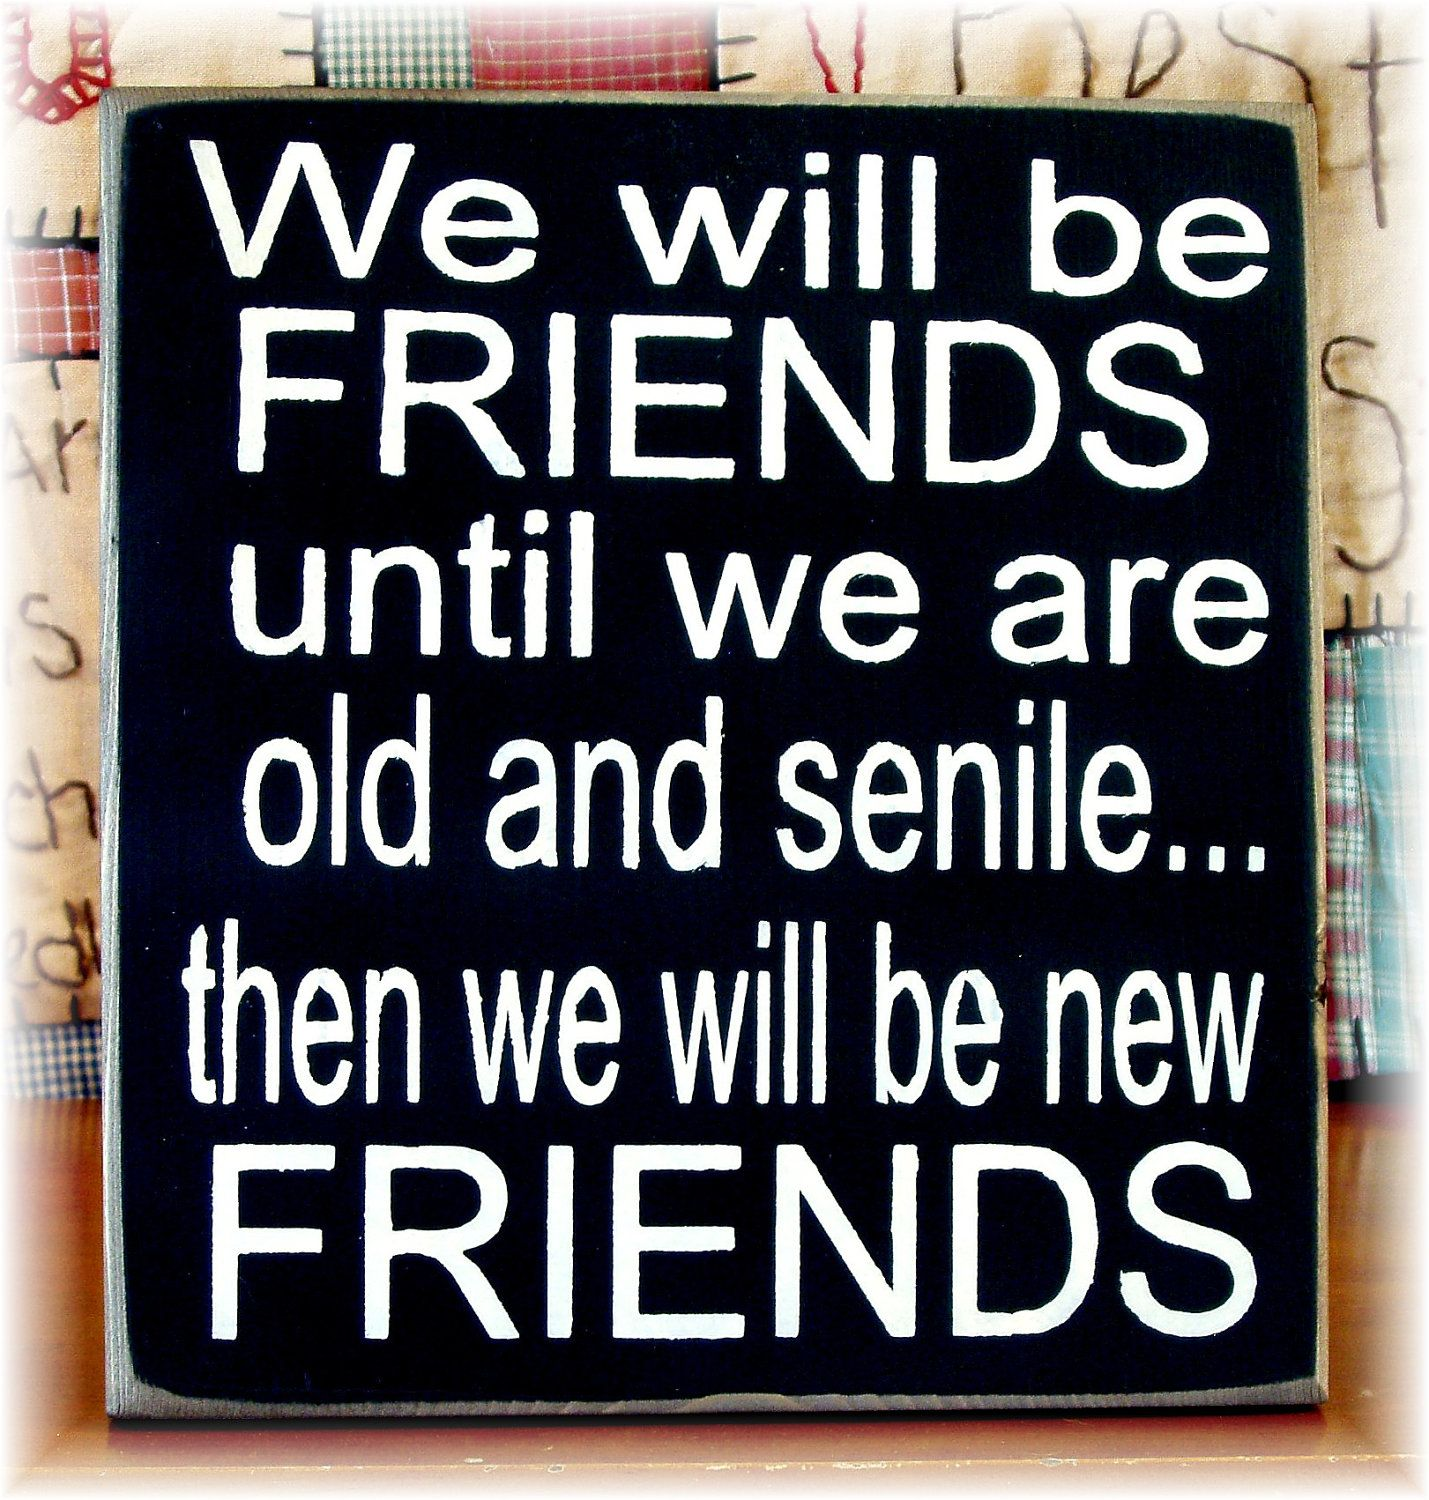 Friends will be friends long time lover - 4 5